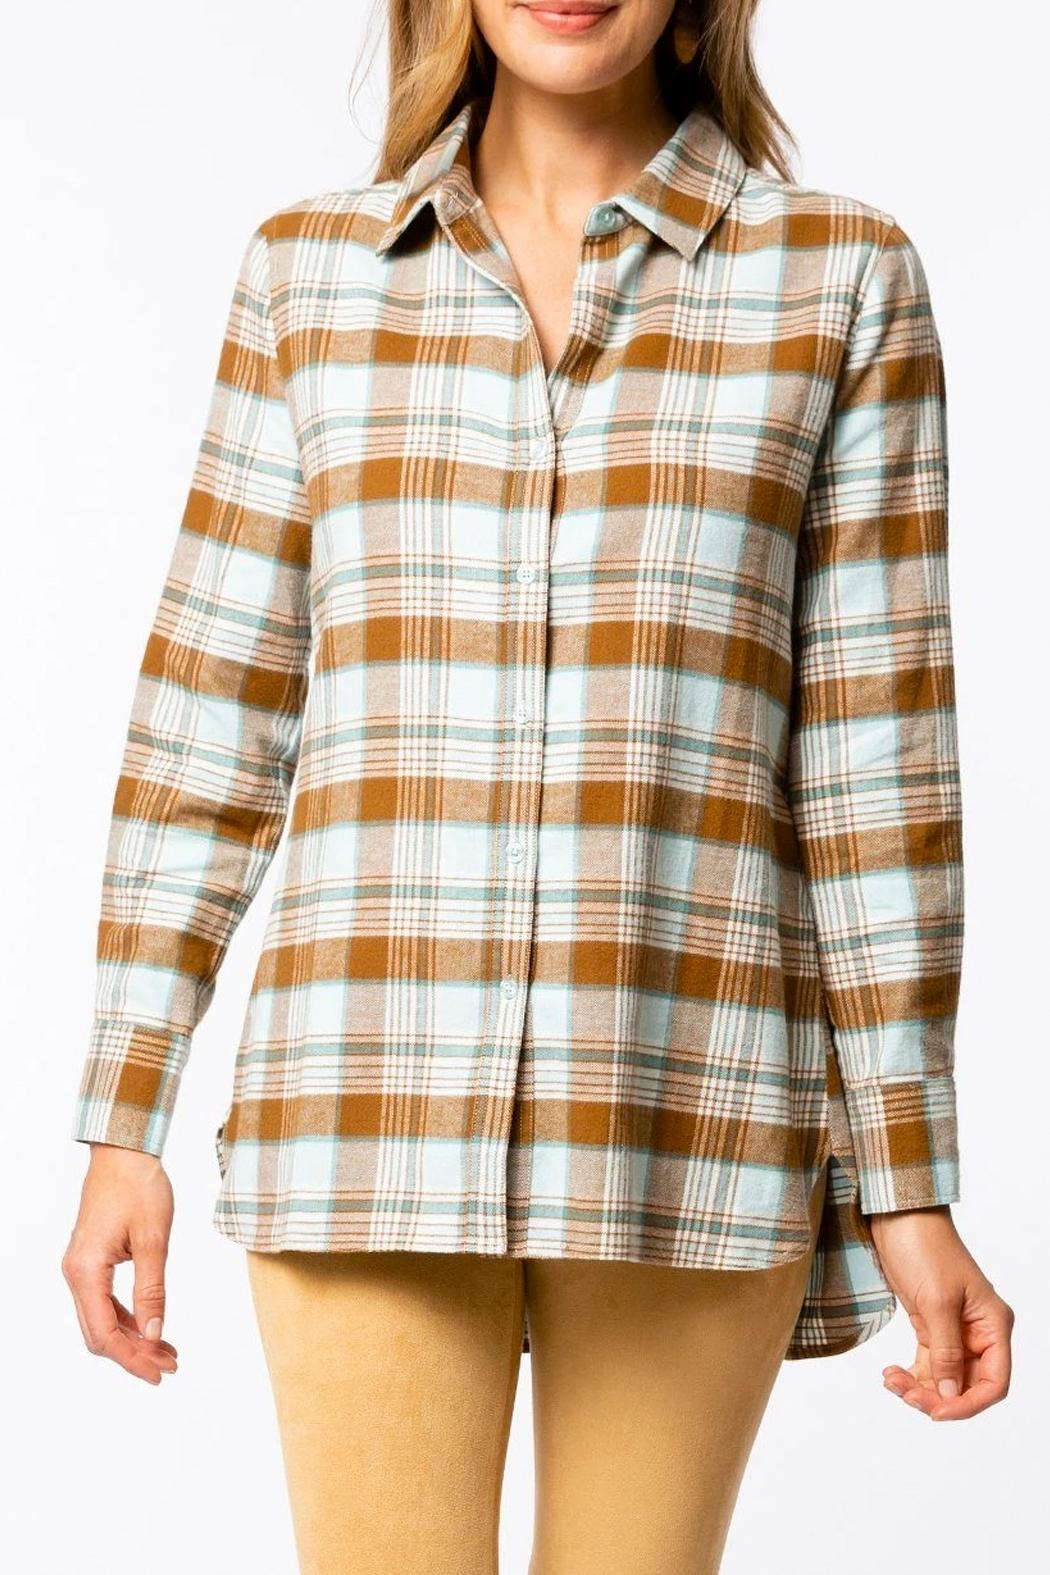 Tyler Boe Brushed Yellowstone-Plaid Shirt - Front Cropped Image